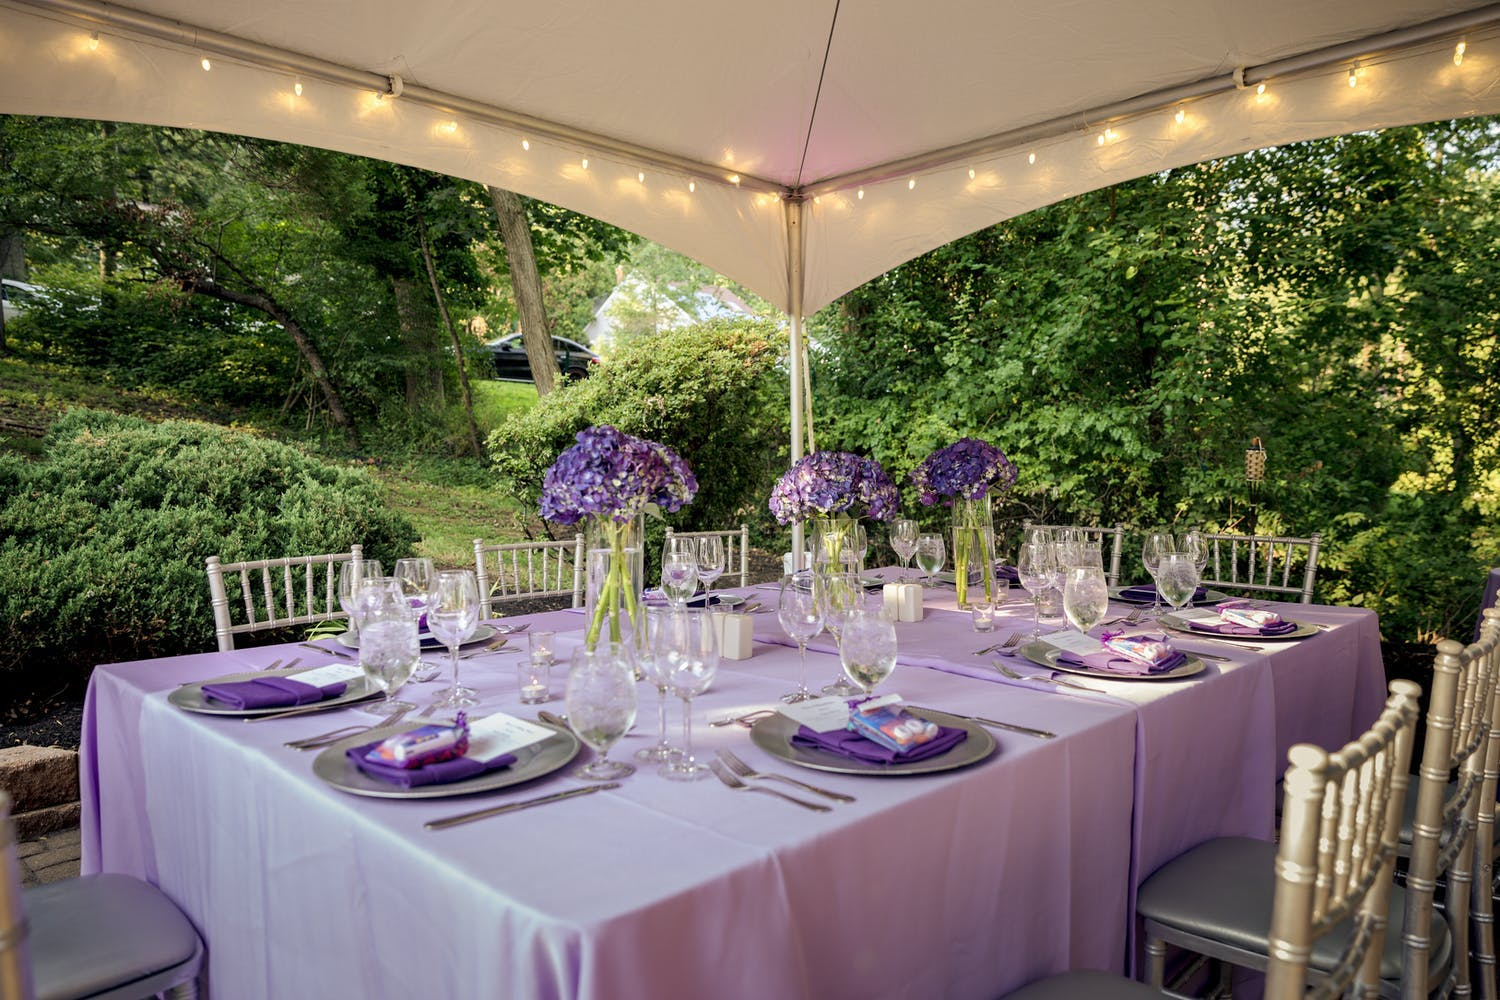 Tented Backyard Birthday Party With Violet Tablescape and Surrounding Greenery | PartySlate